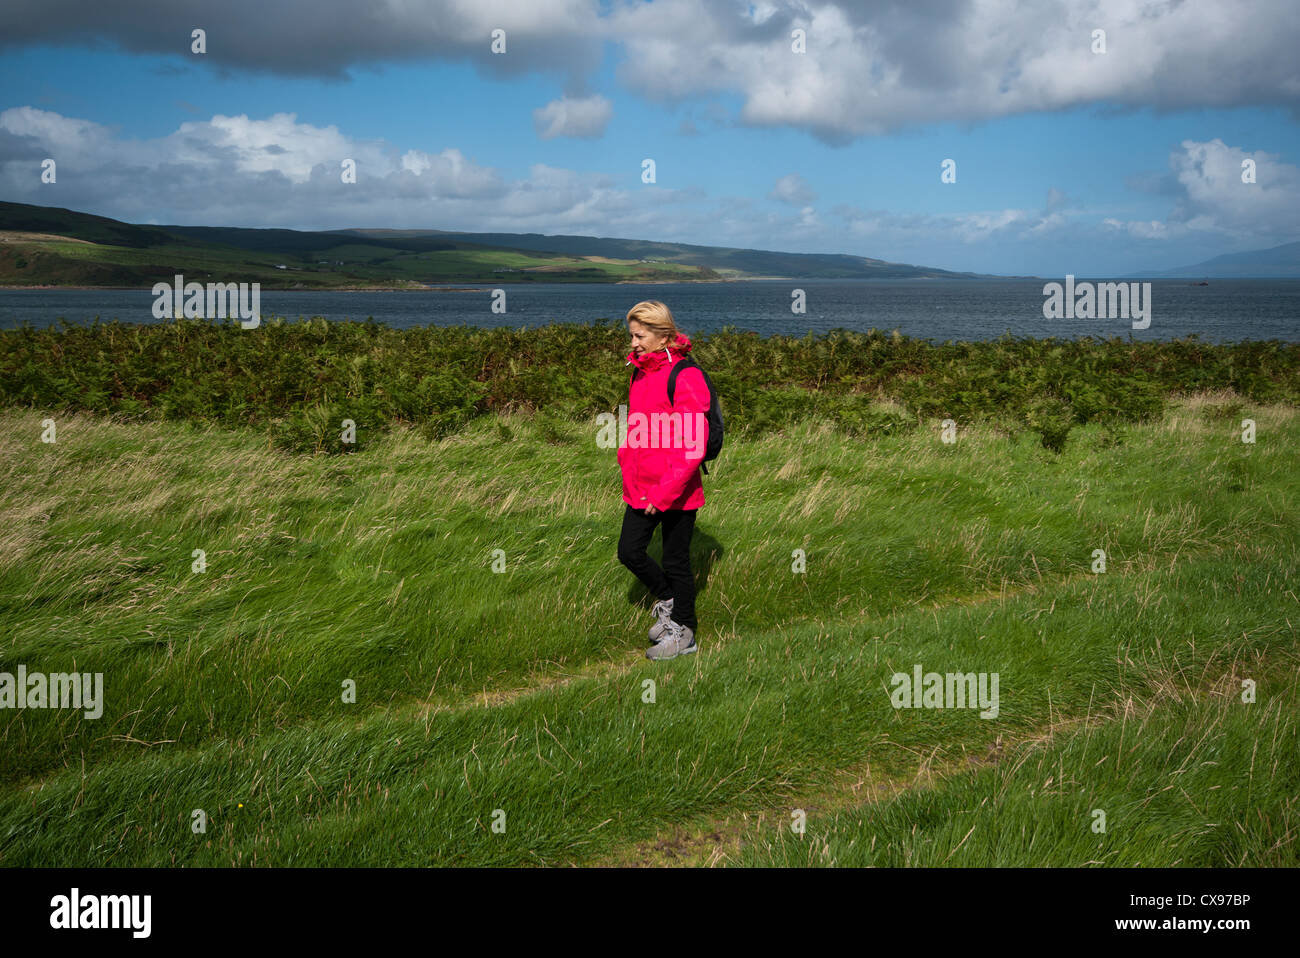 Side View Of A Woman Person Walking Through The Countryside Wearing Waterproof Clothing and A Rucksack - Stock Image